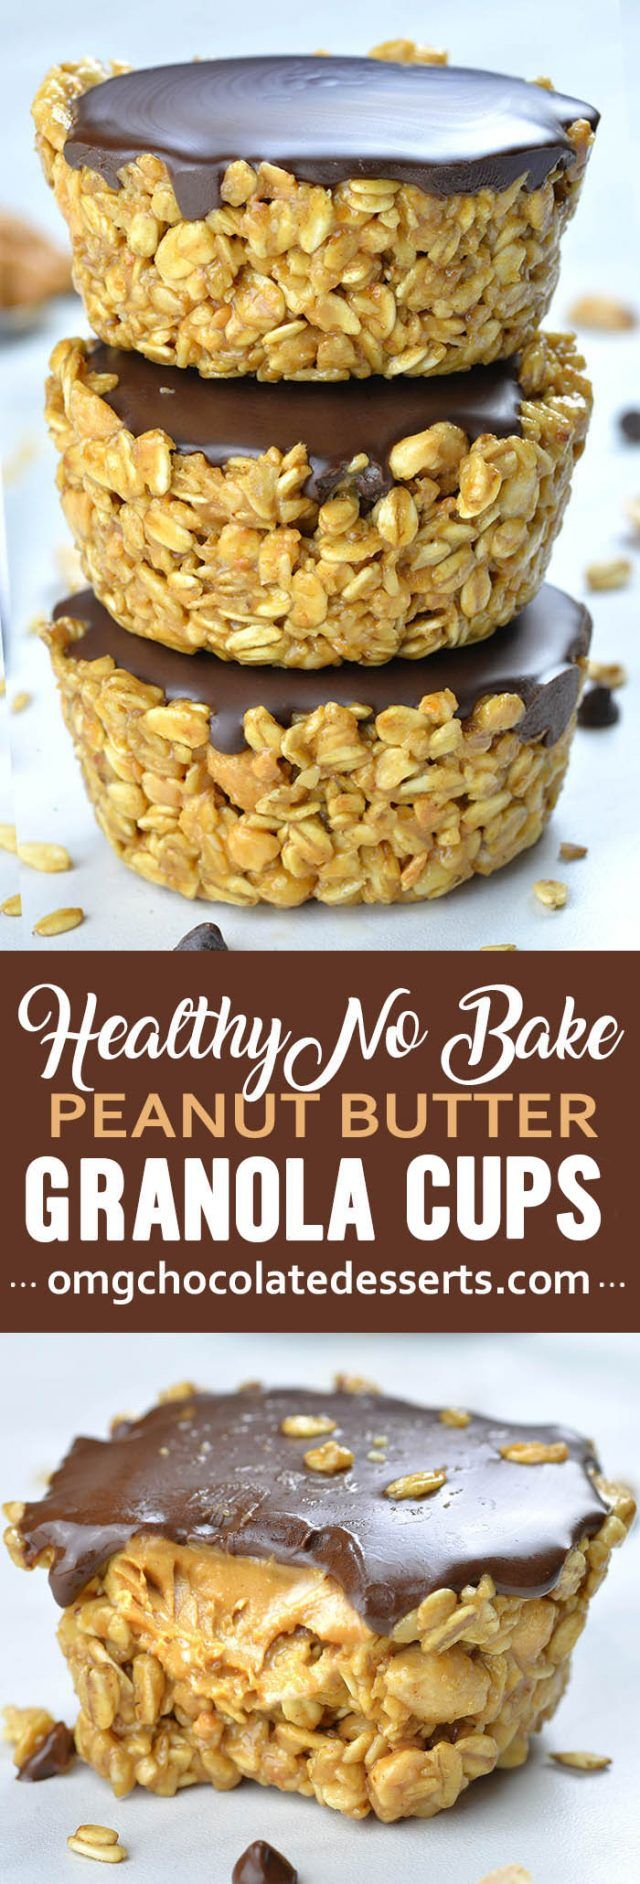 b544da5e8c16654544069a245c8d0a84 If you are looking for healthy and easy recipes to make ahead and have on hand w...